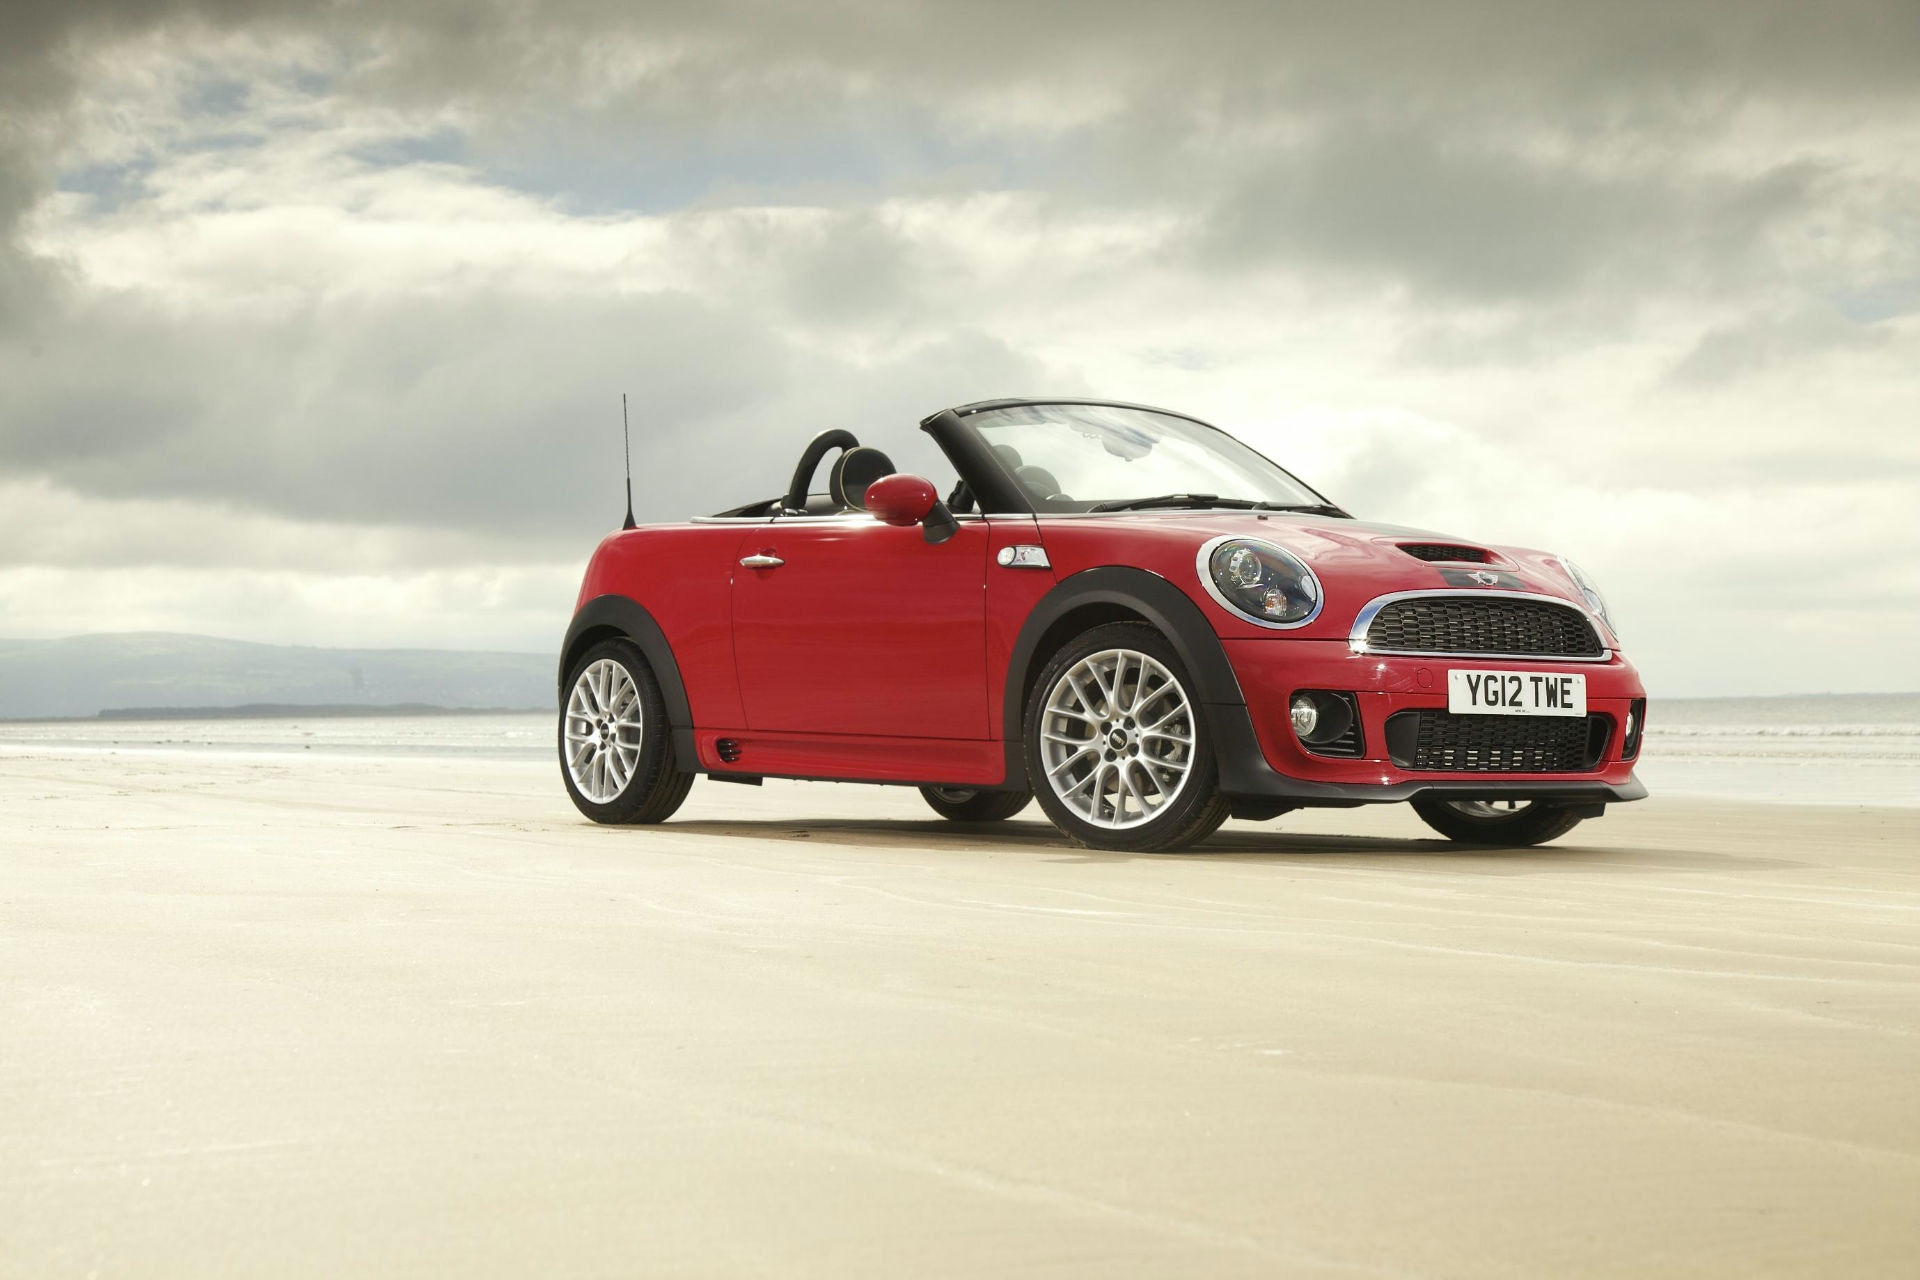 A quick convertible for less than £10k, the Mini Roadster is ideal.